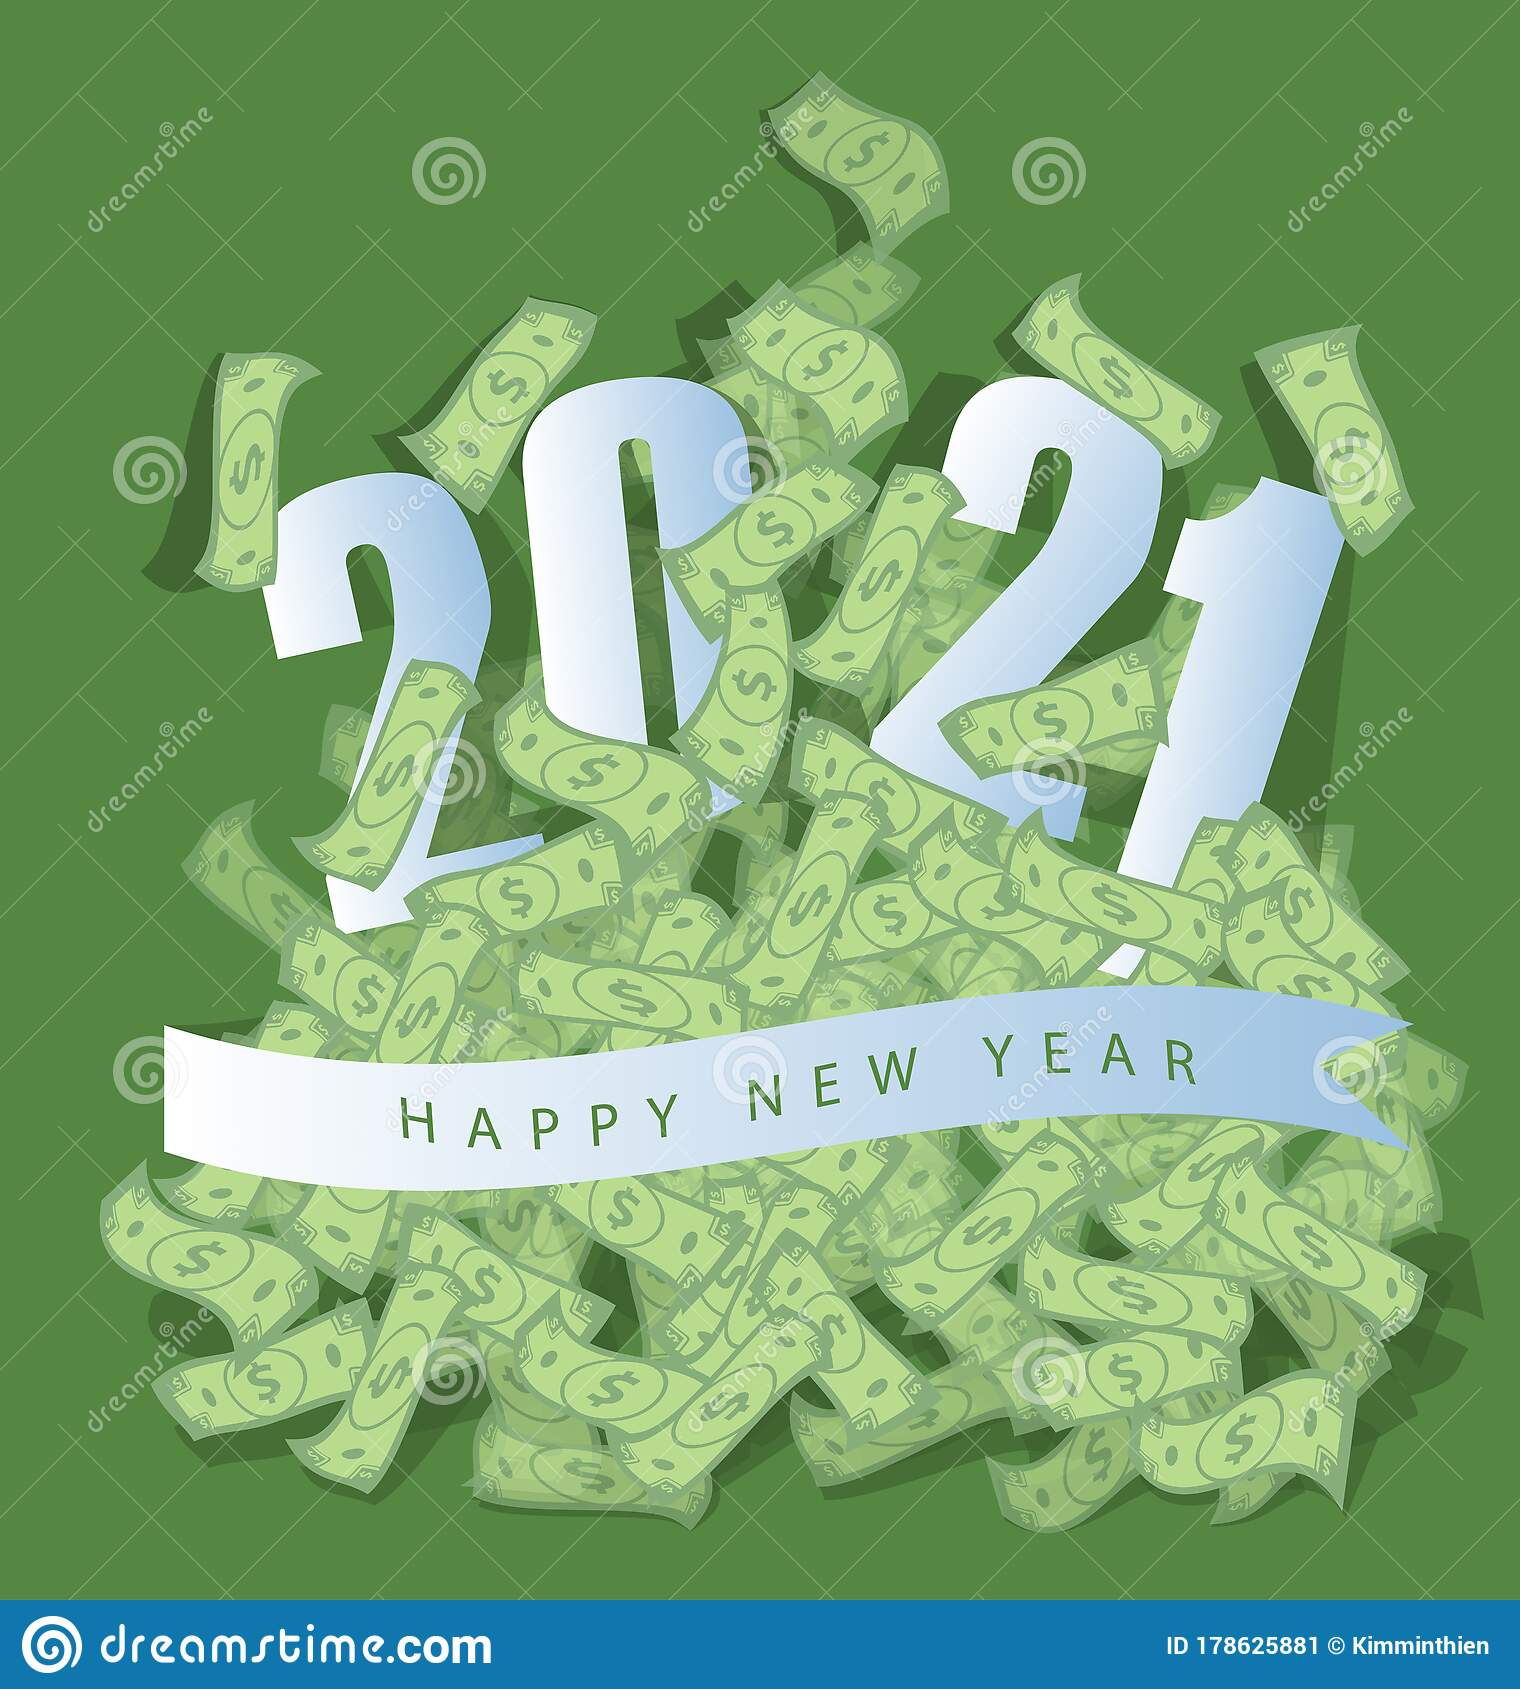 Happy new year 2021 stock vector. Illustration of calendar ...